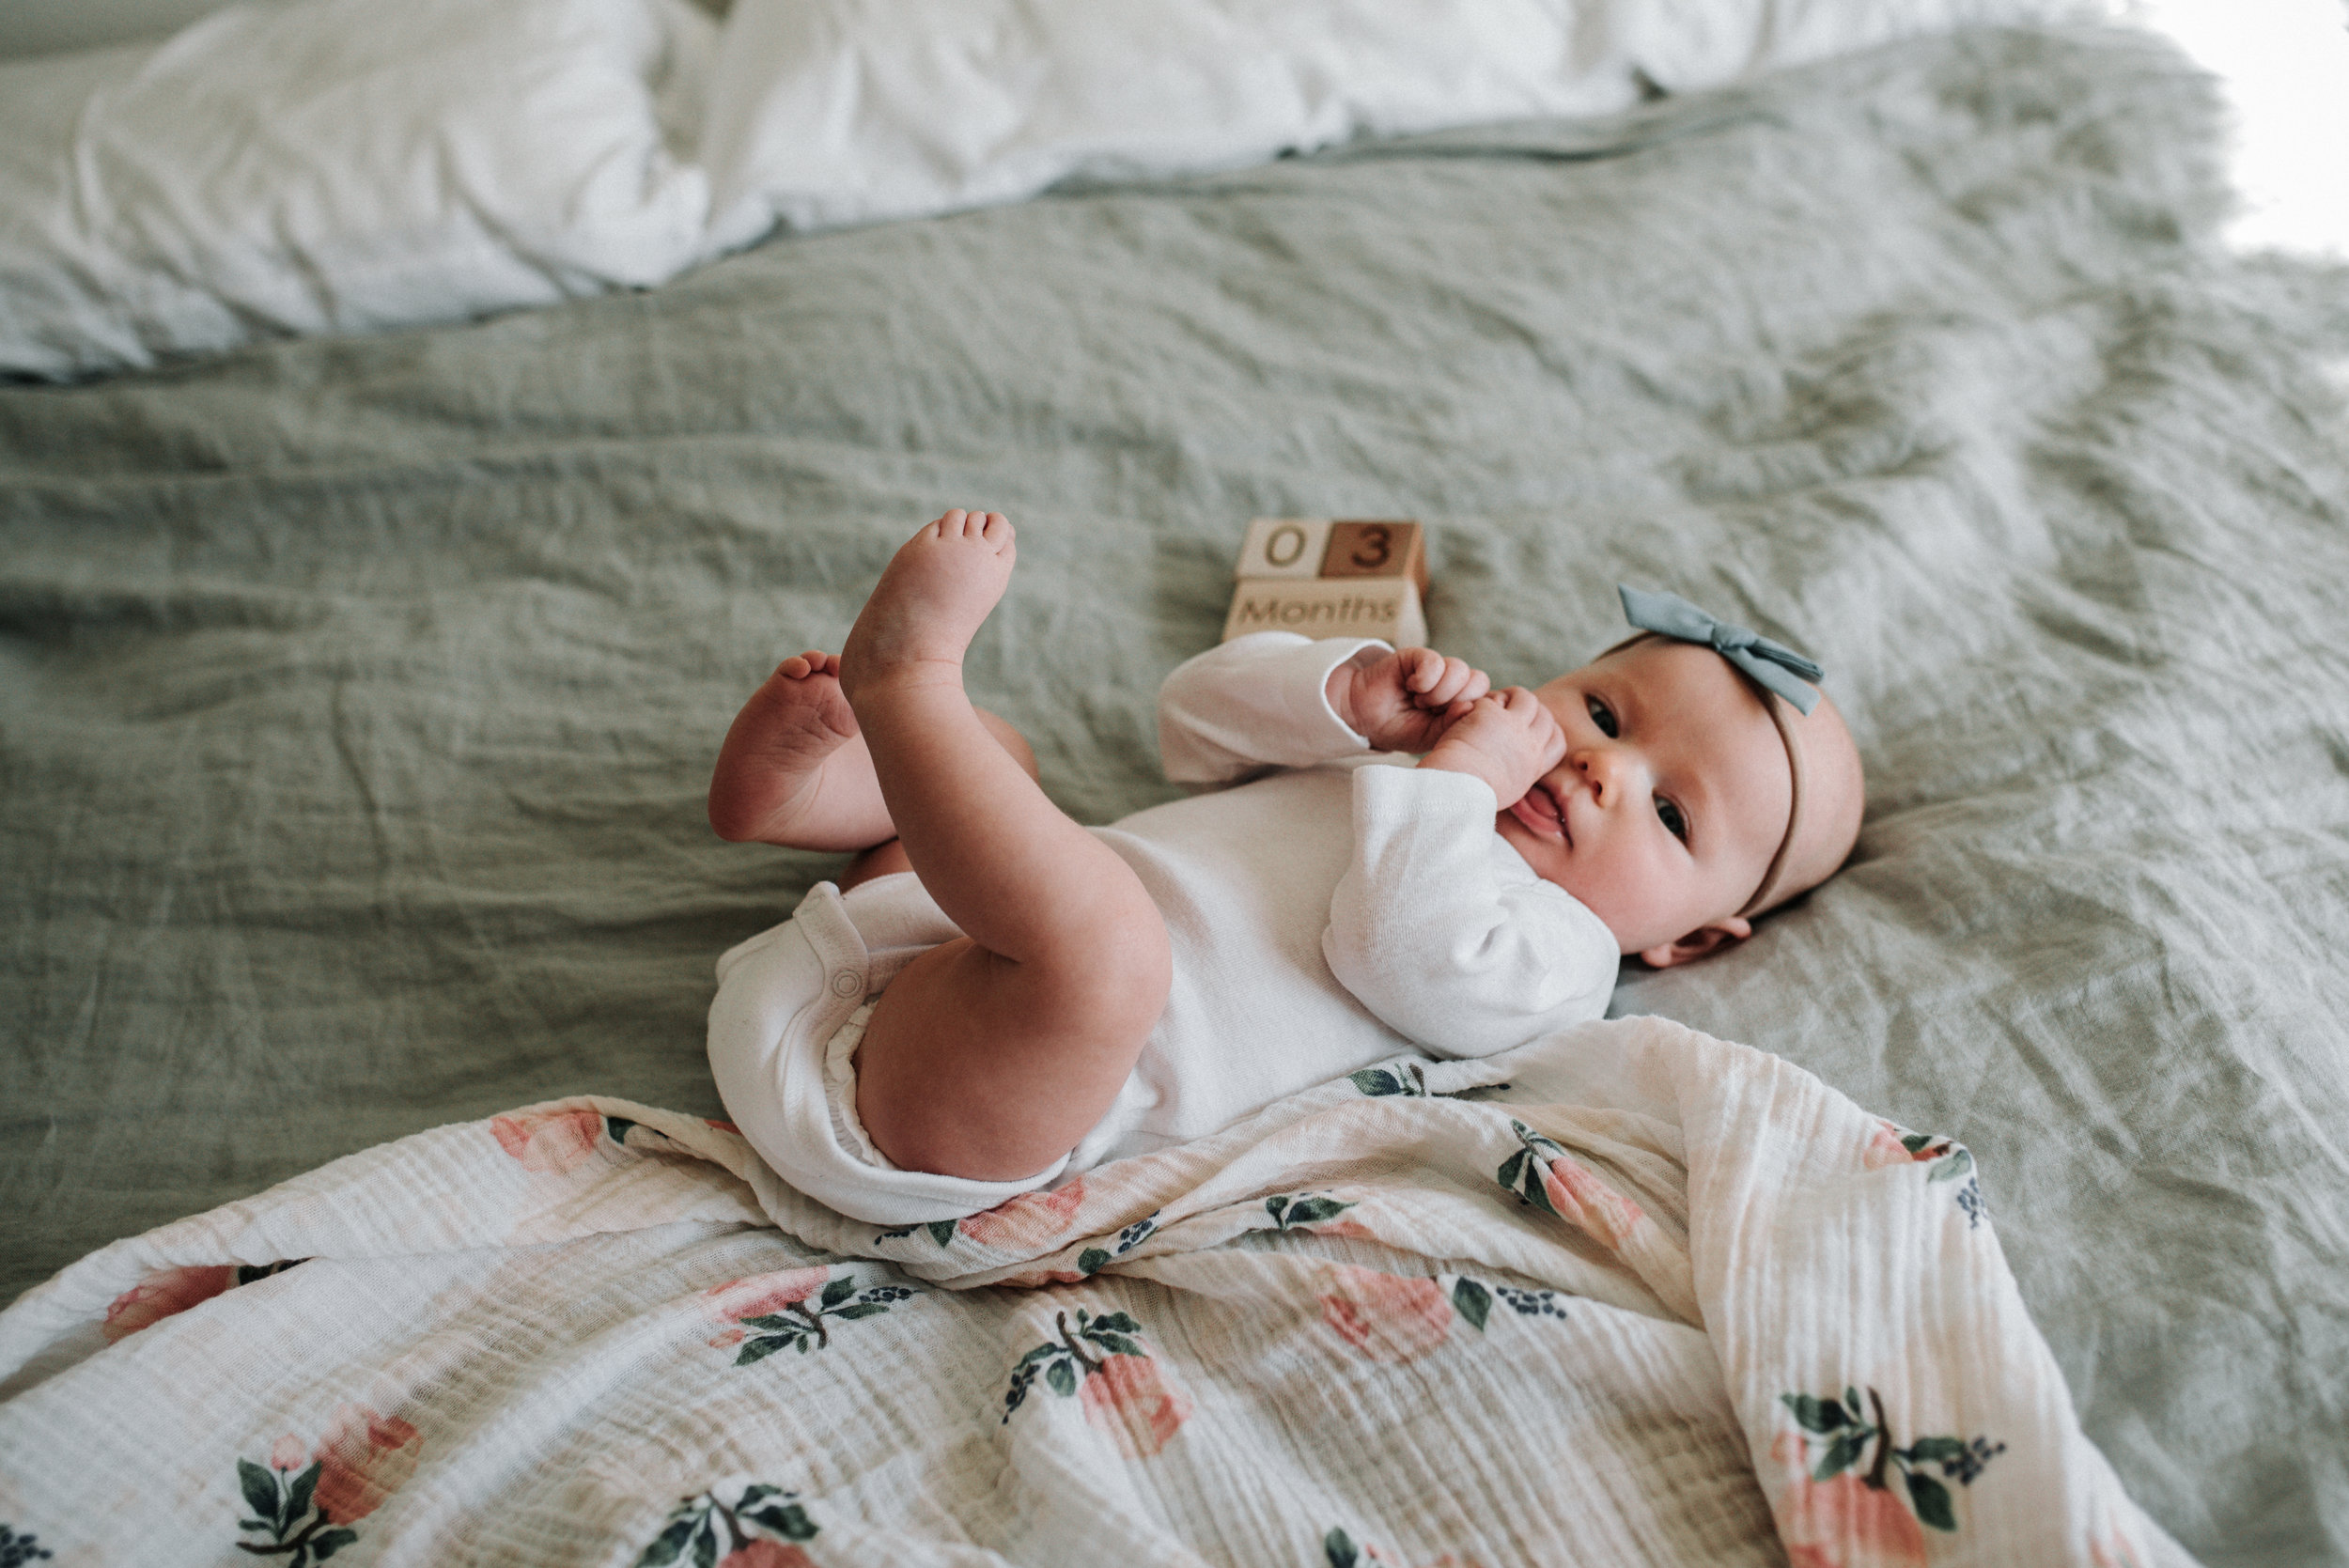 As you can see in this image, the baby is dressed very simply but the understated bow and printed swaddle blanket add so much to the image.